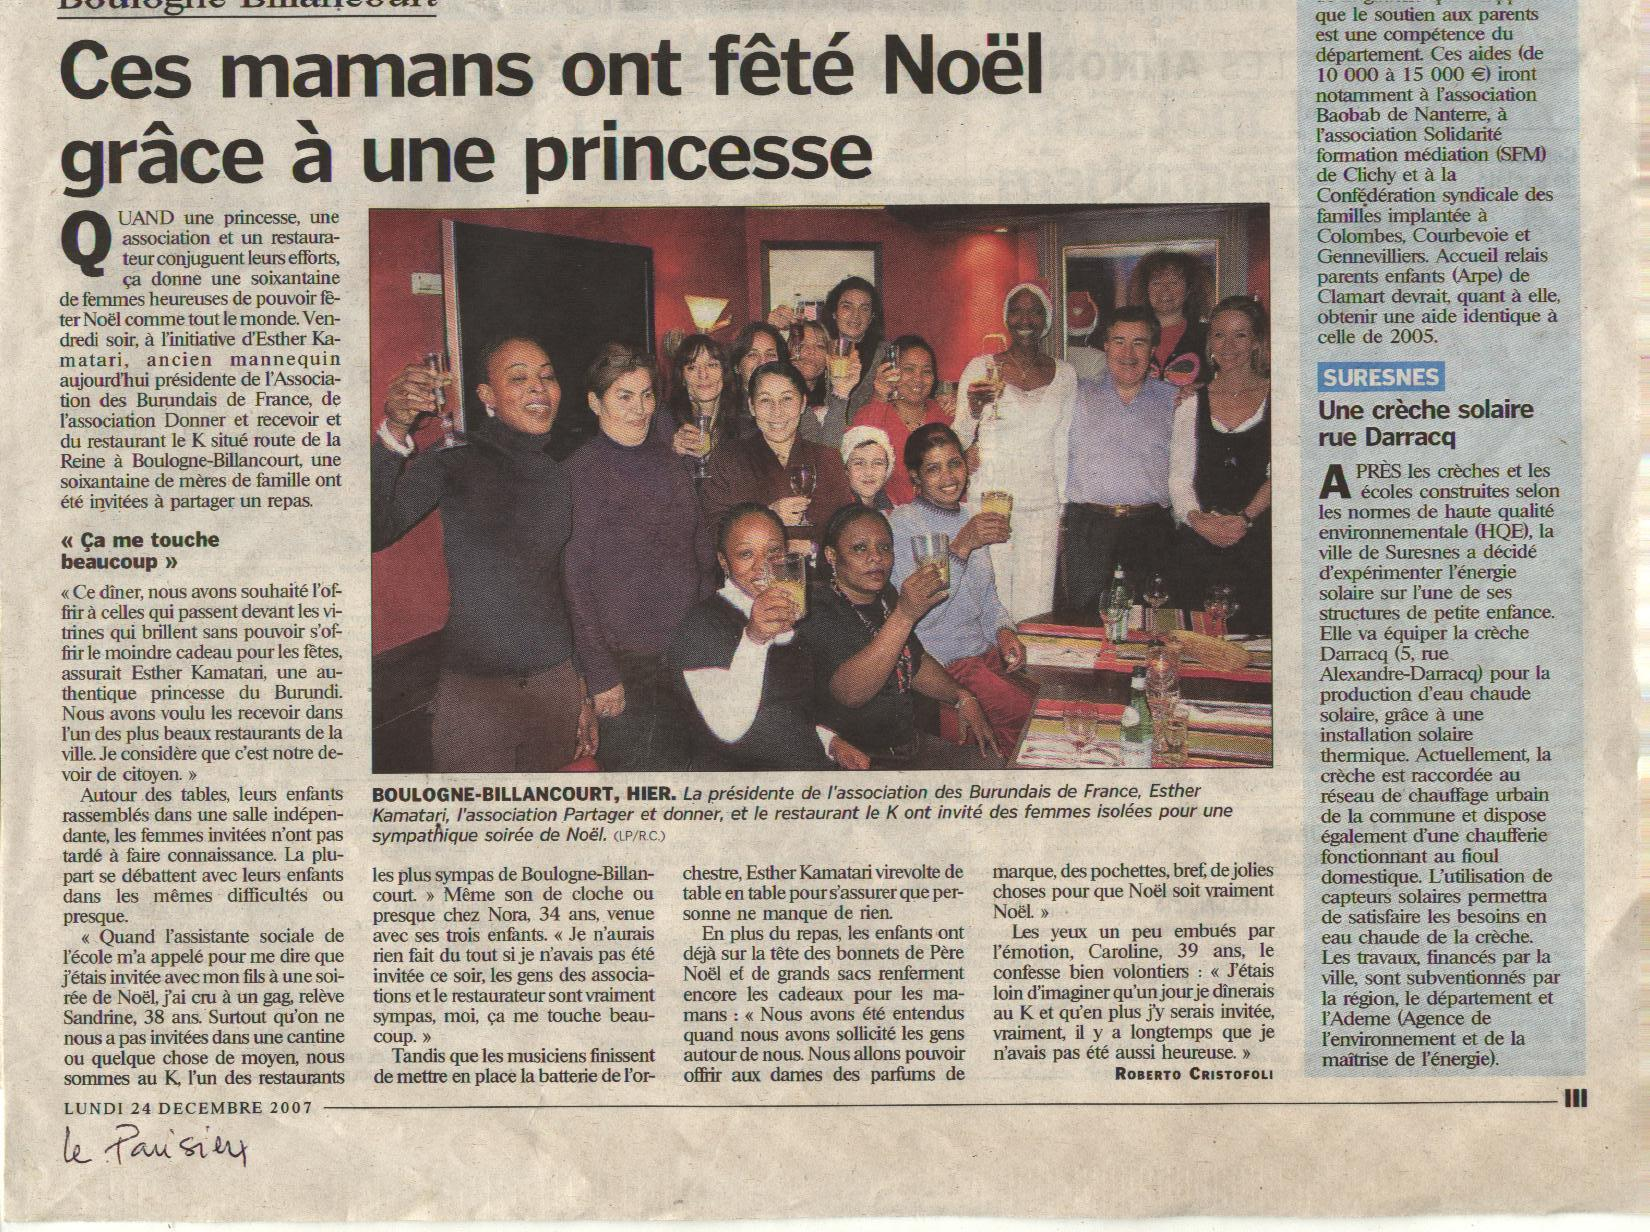 LE PARISIEN 2007 COPYRIGHT